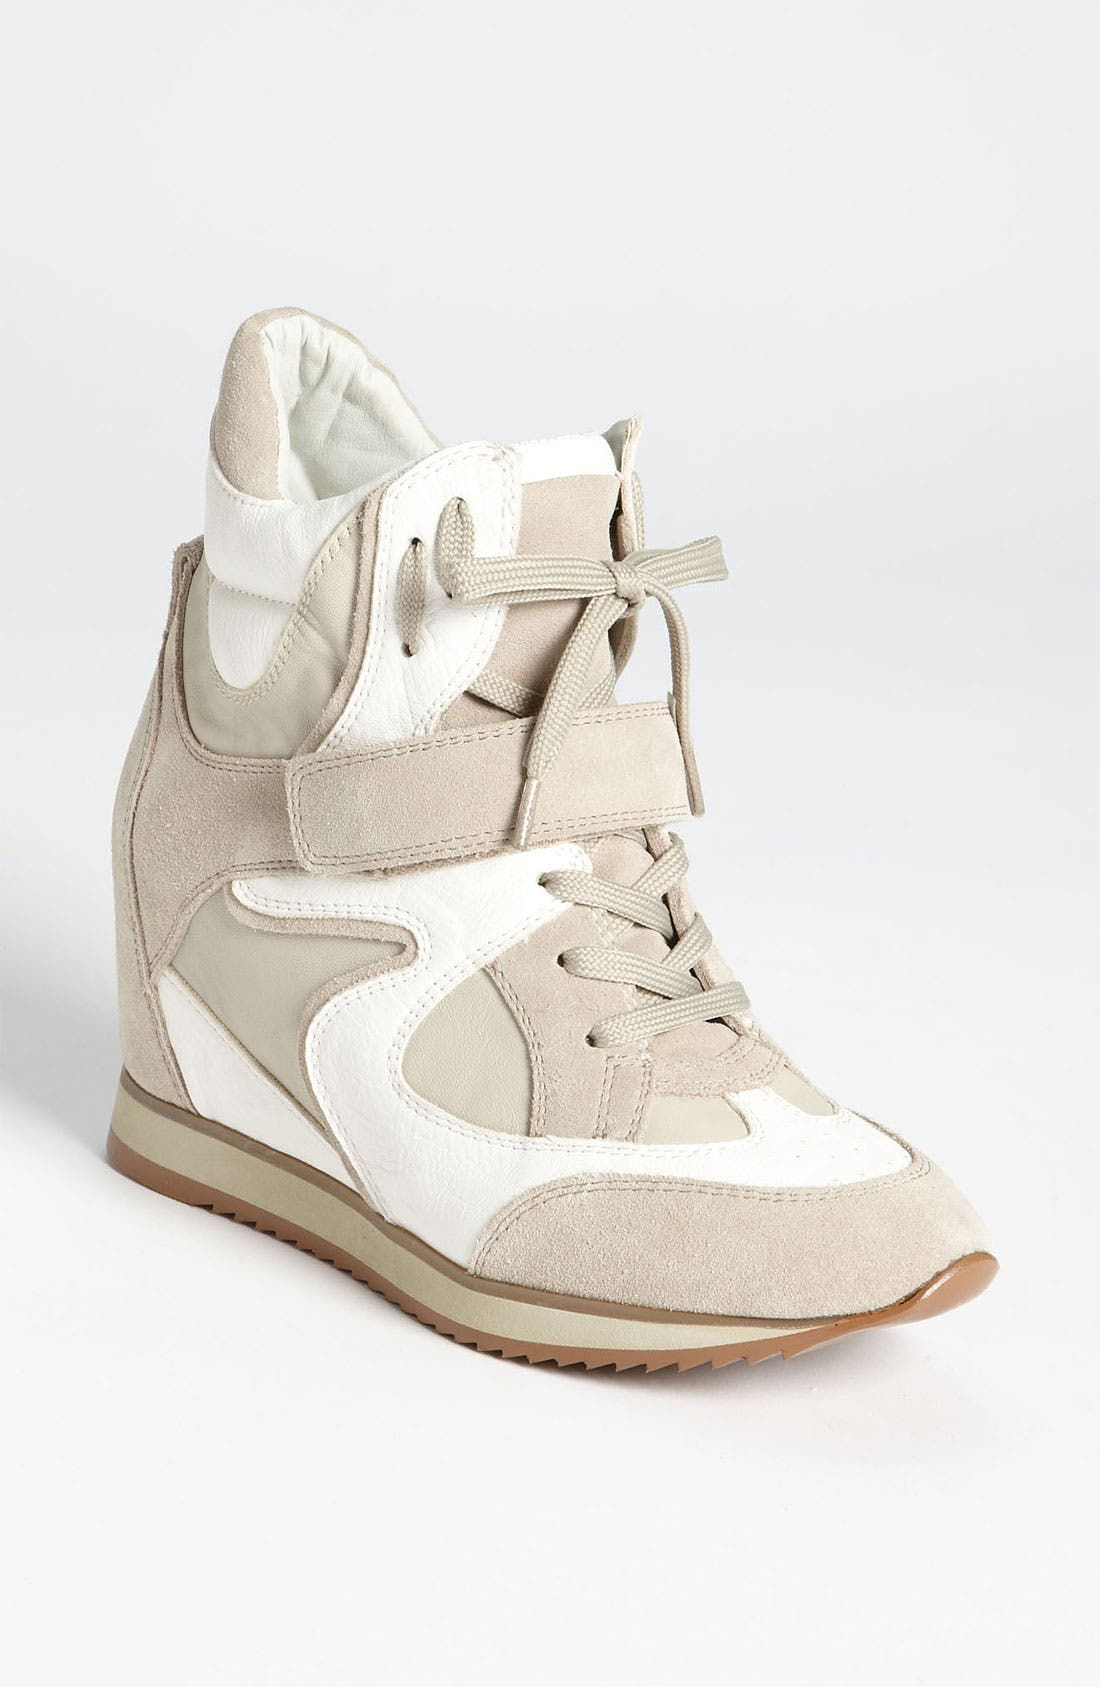 Main Image - REPORT 'Tao' Wedge Sneaker